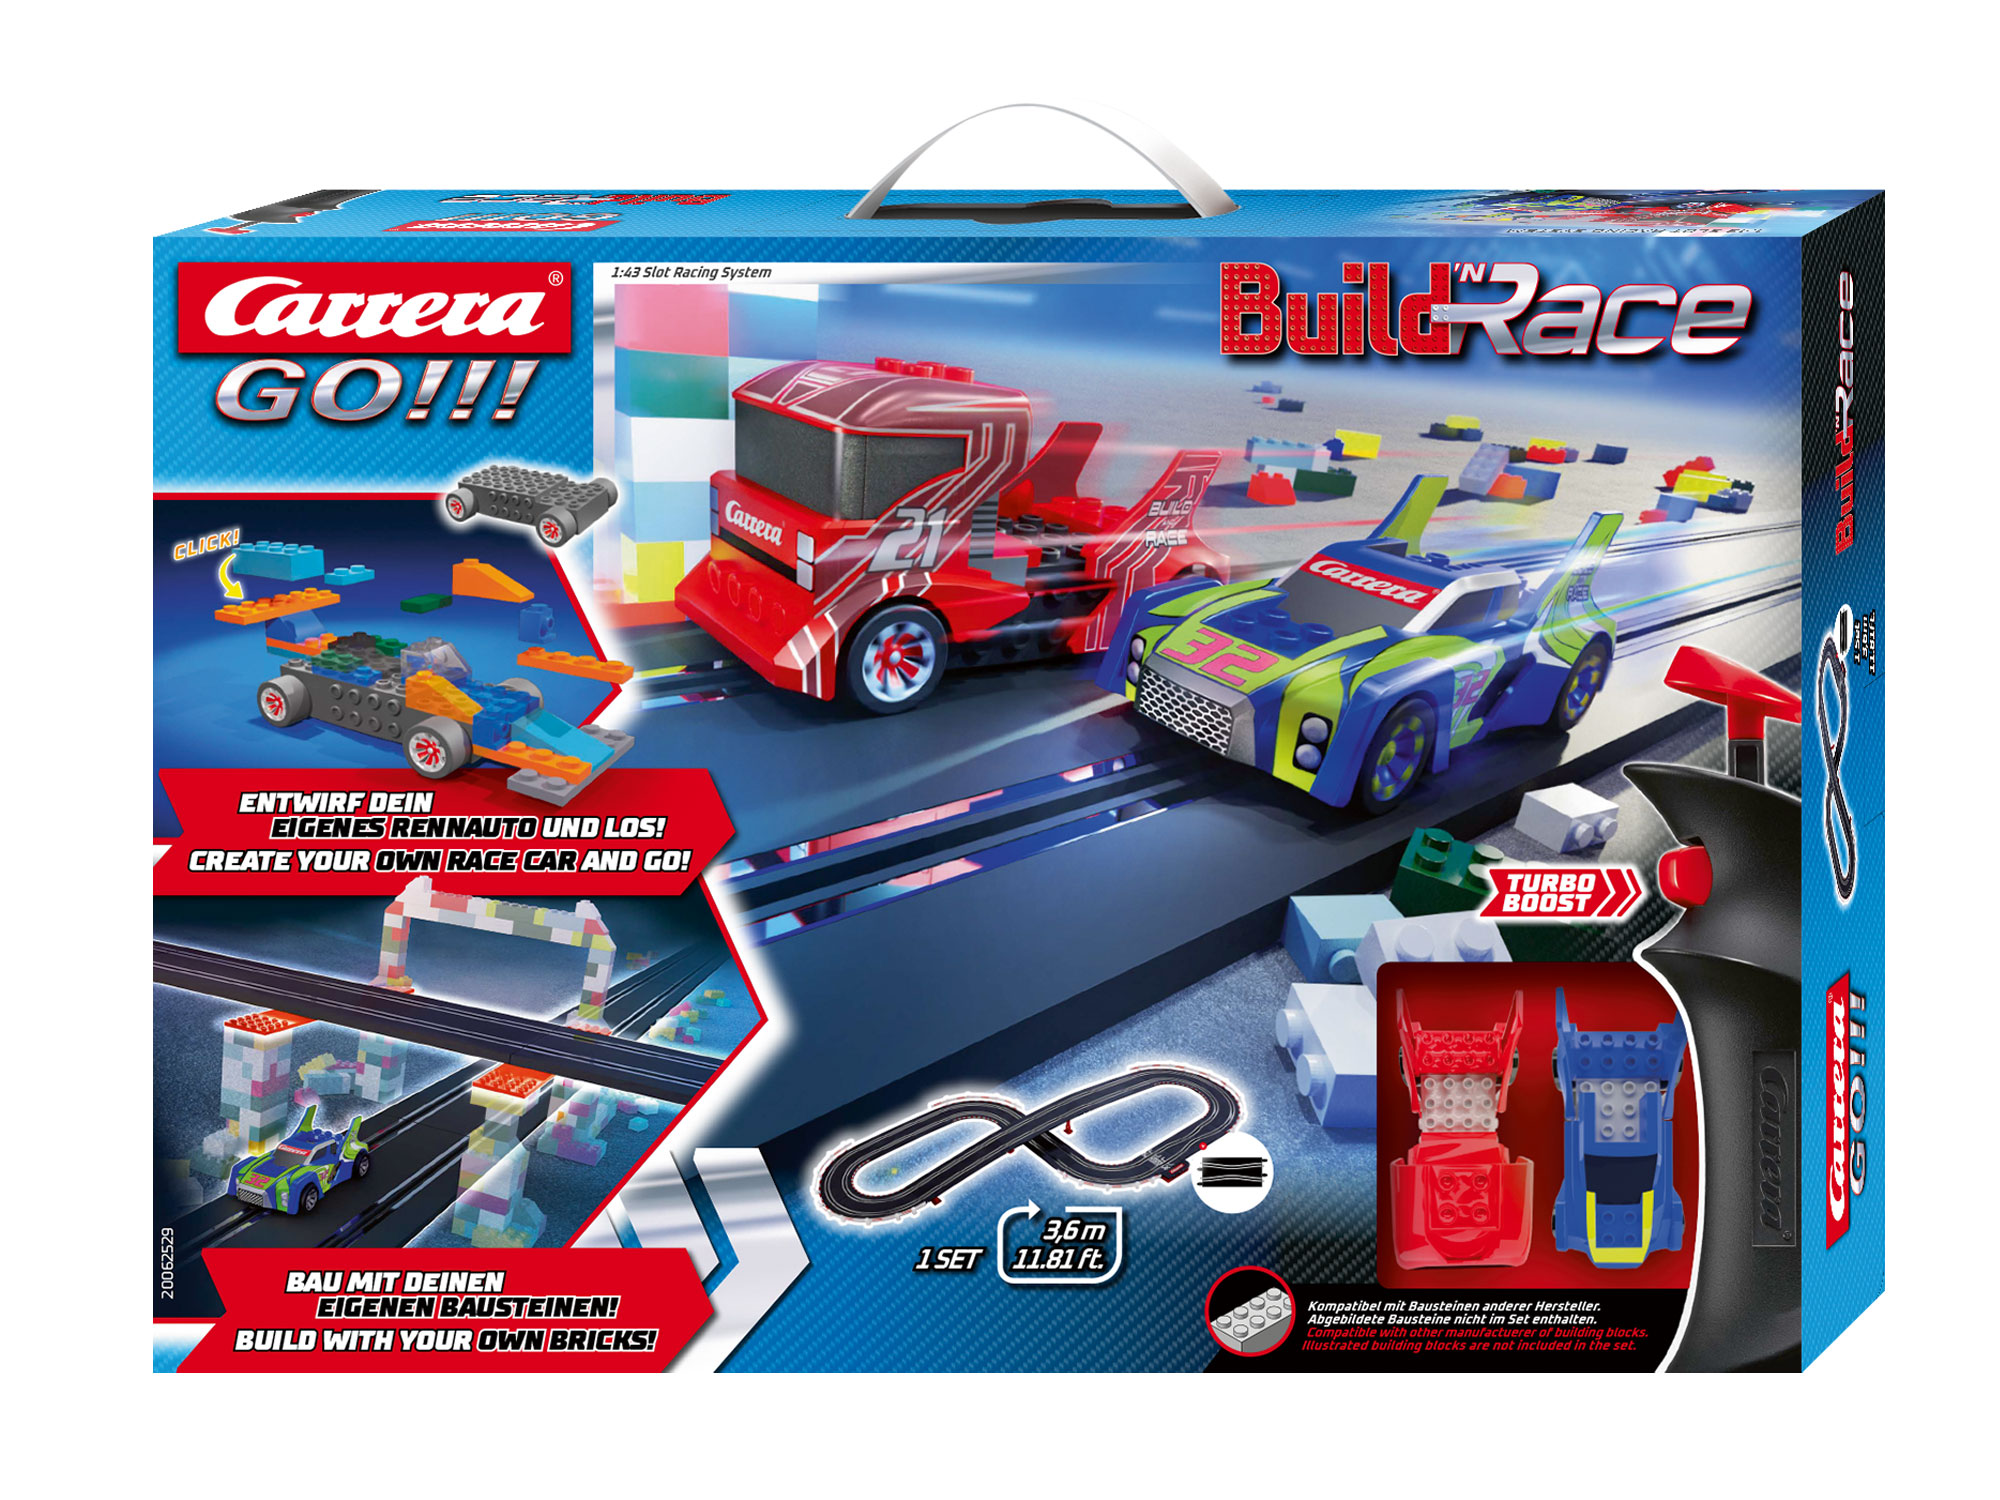 Carrera 62529 GO!!! Build 'N Race - Racing Set 3.6